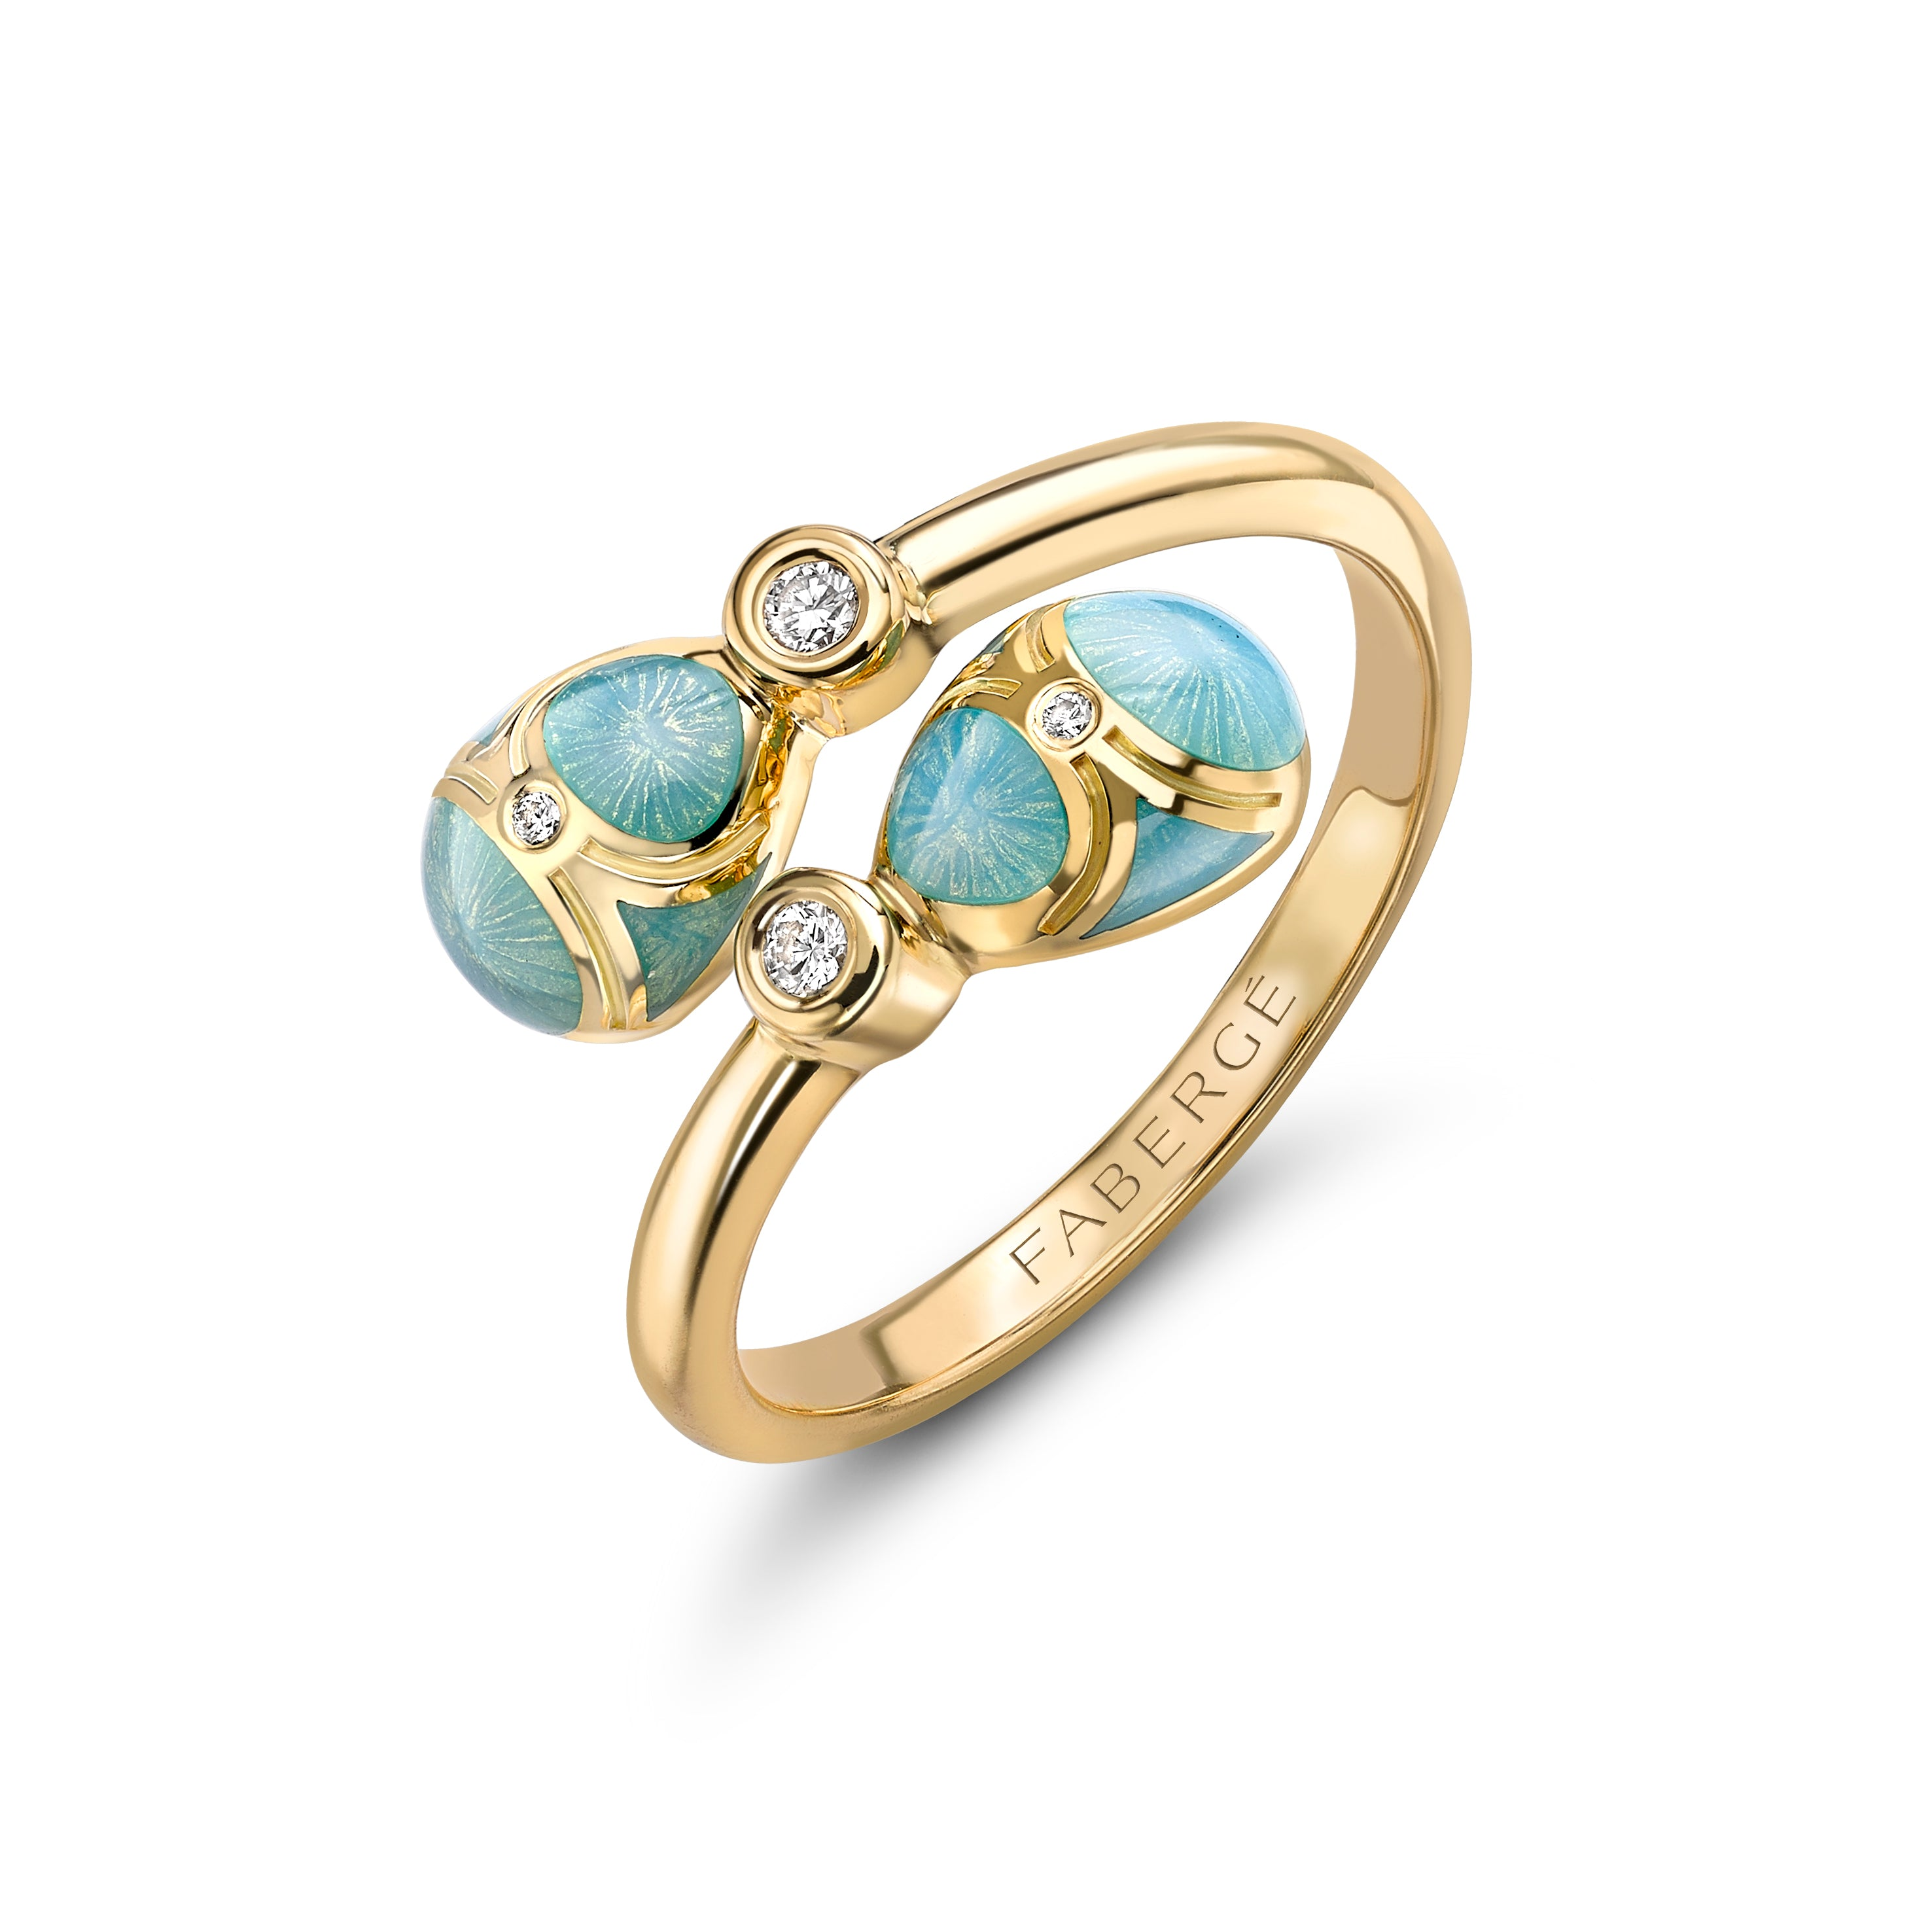 Palais 18K Yellow Gold Diamond & Turquoise Guilloché Enamel Eggs Crossover Ring